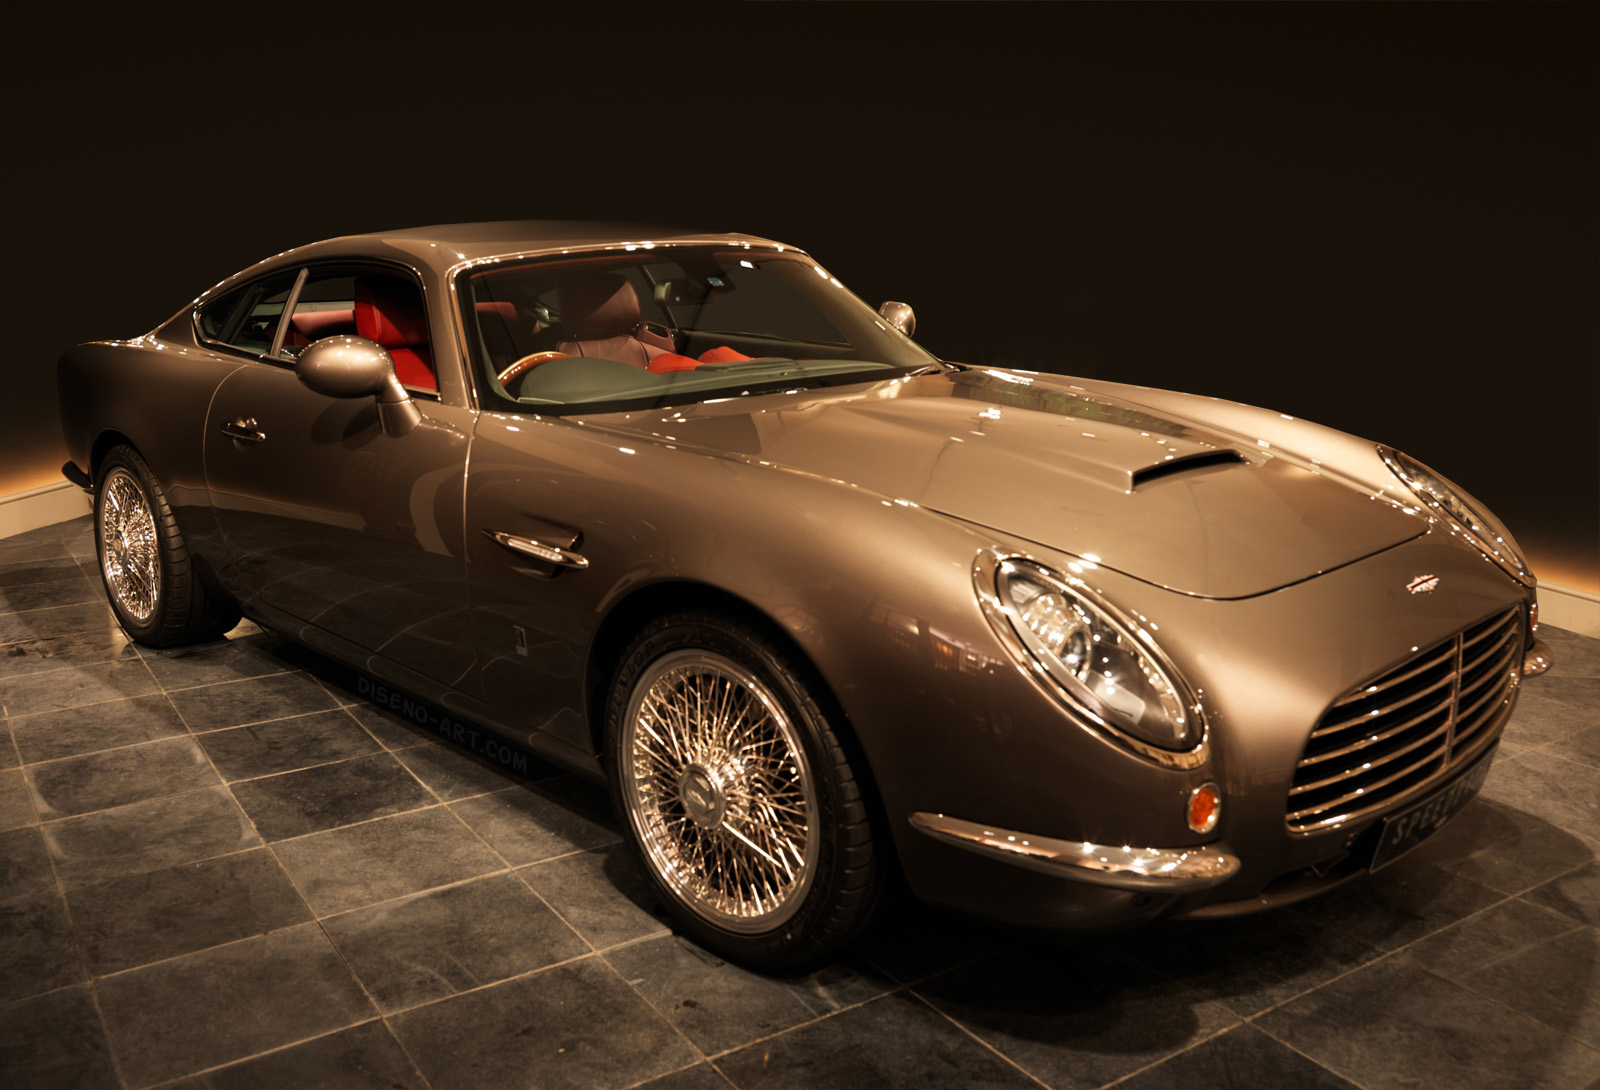 David-Brown-Automotive-Speedback.jpg